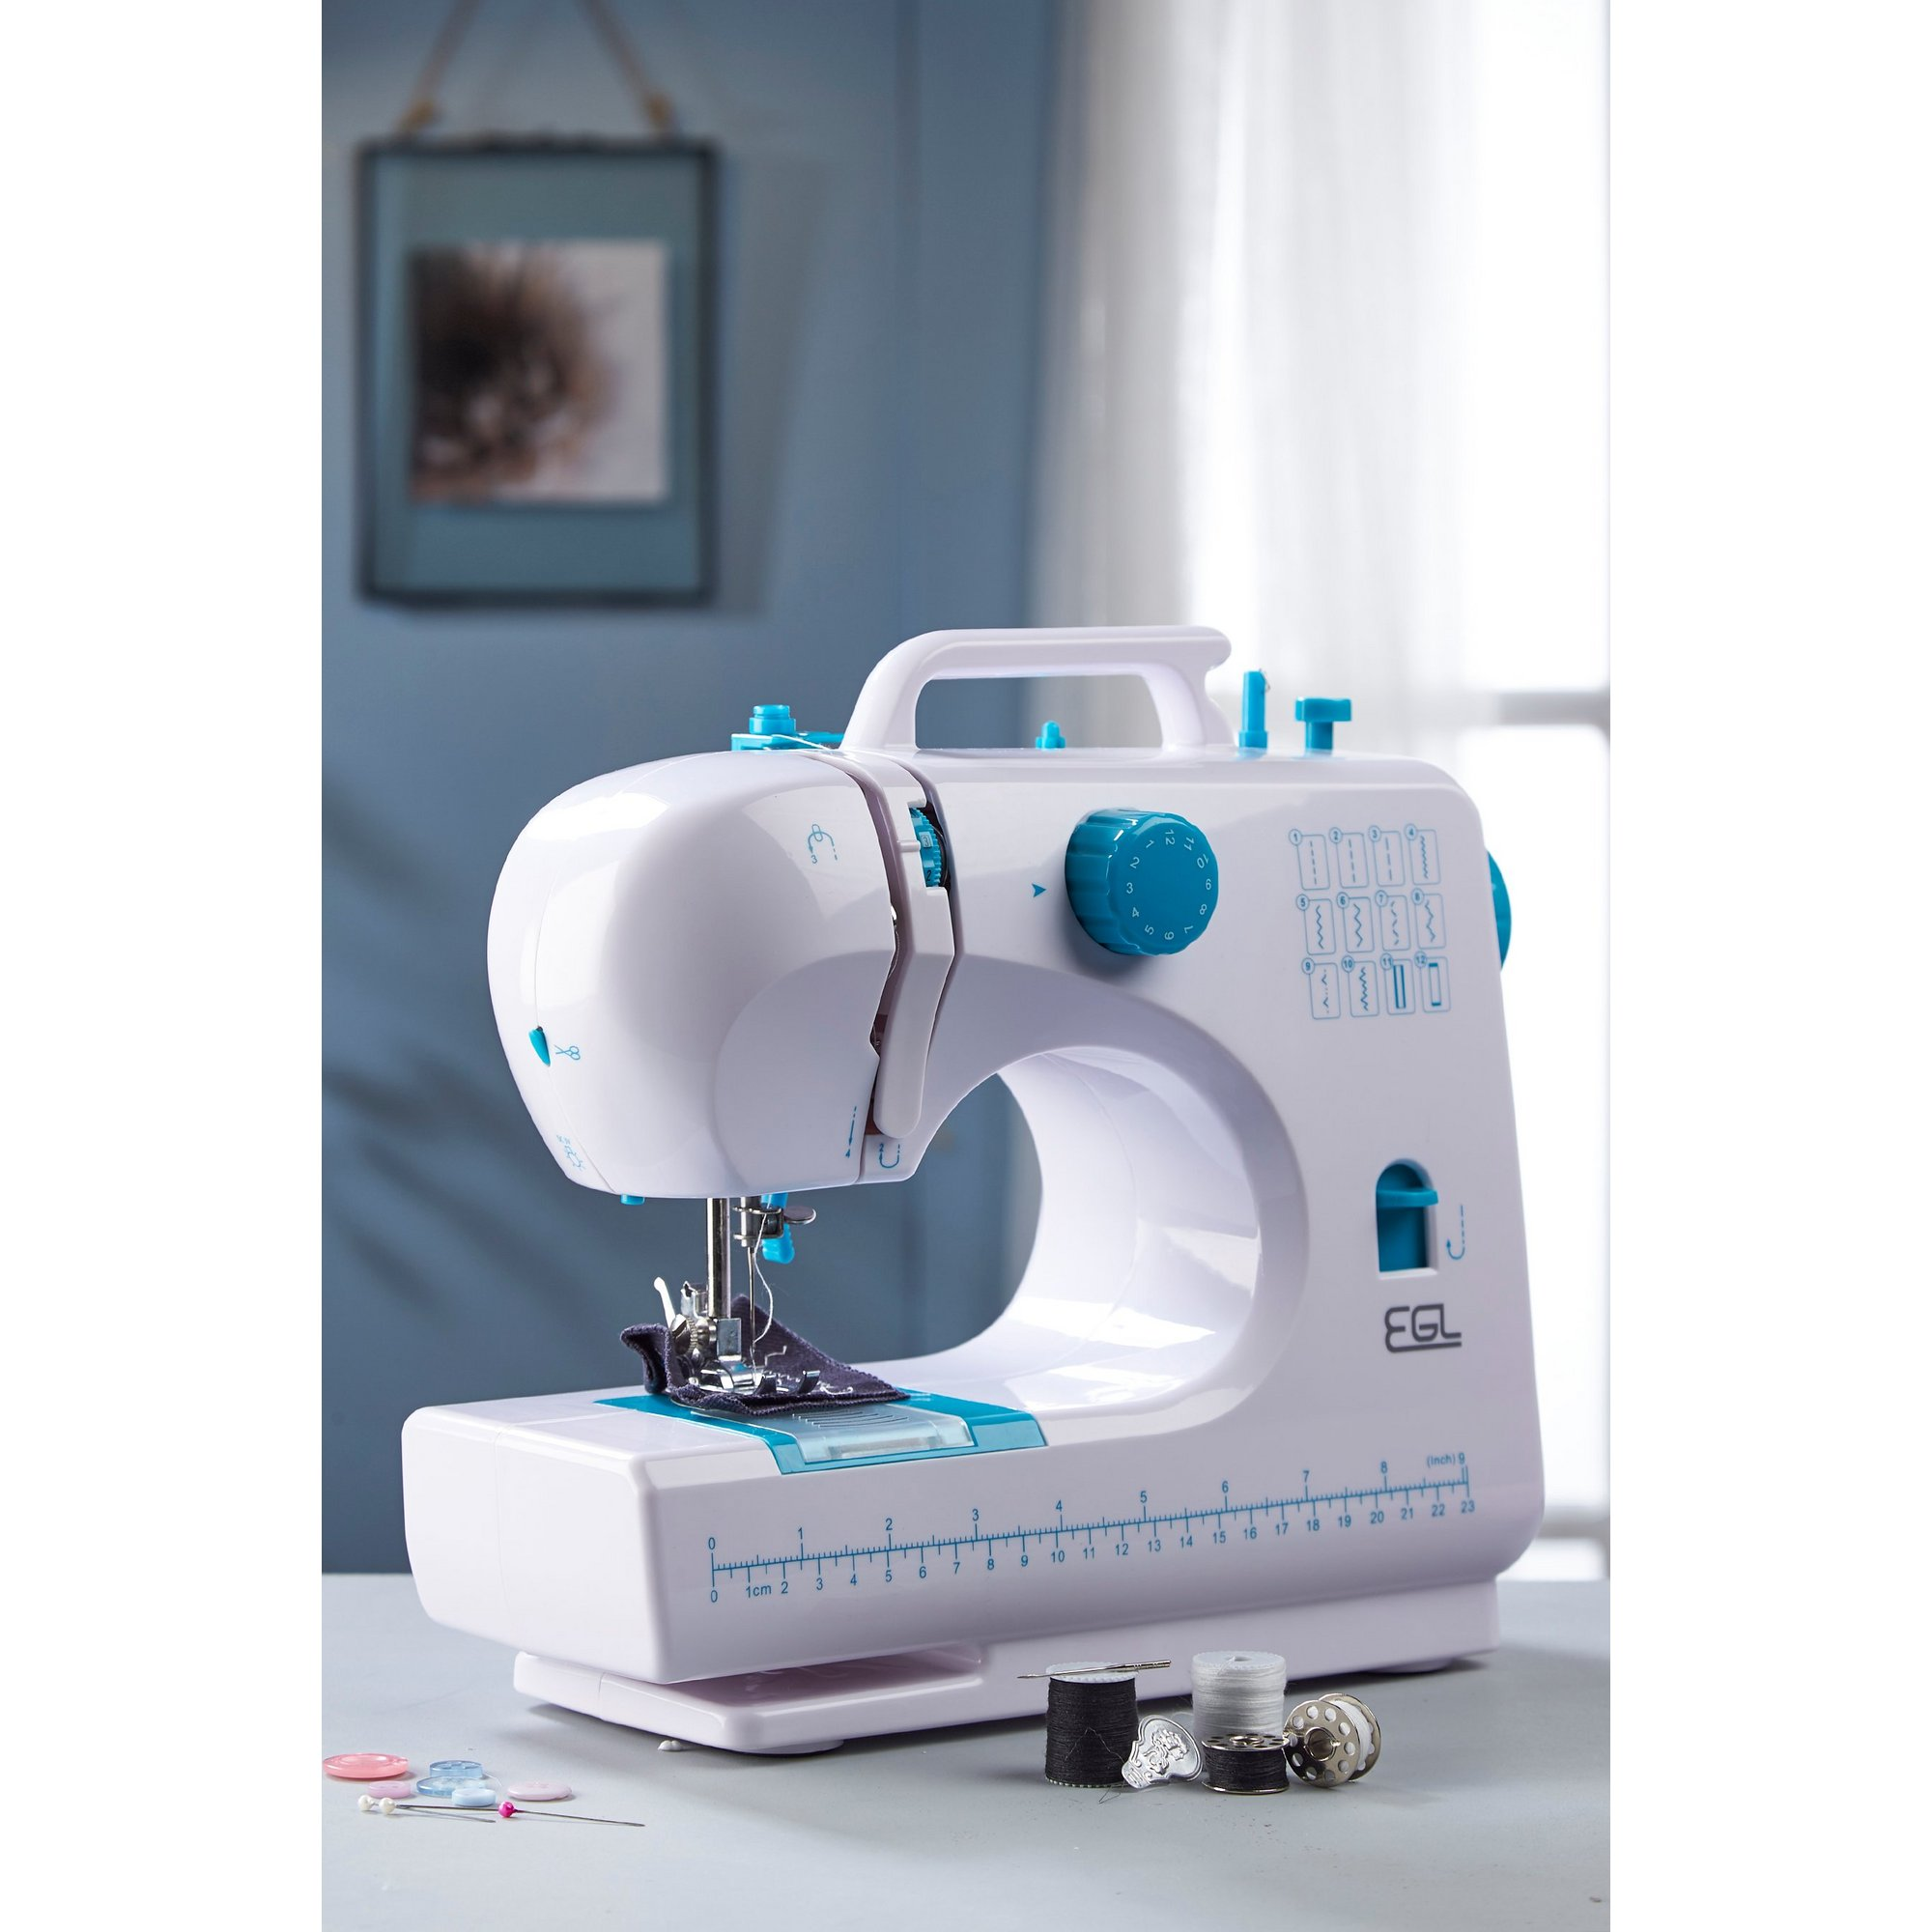 Image of 506 Compact Sewing Machine